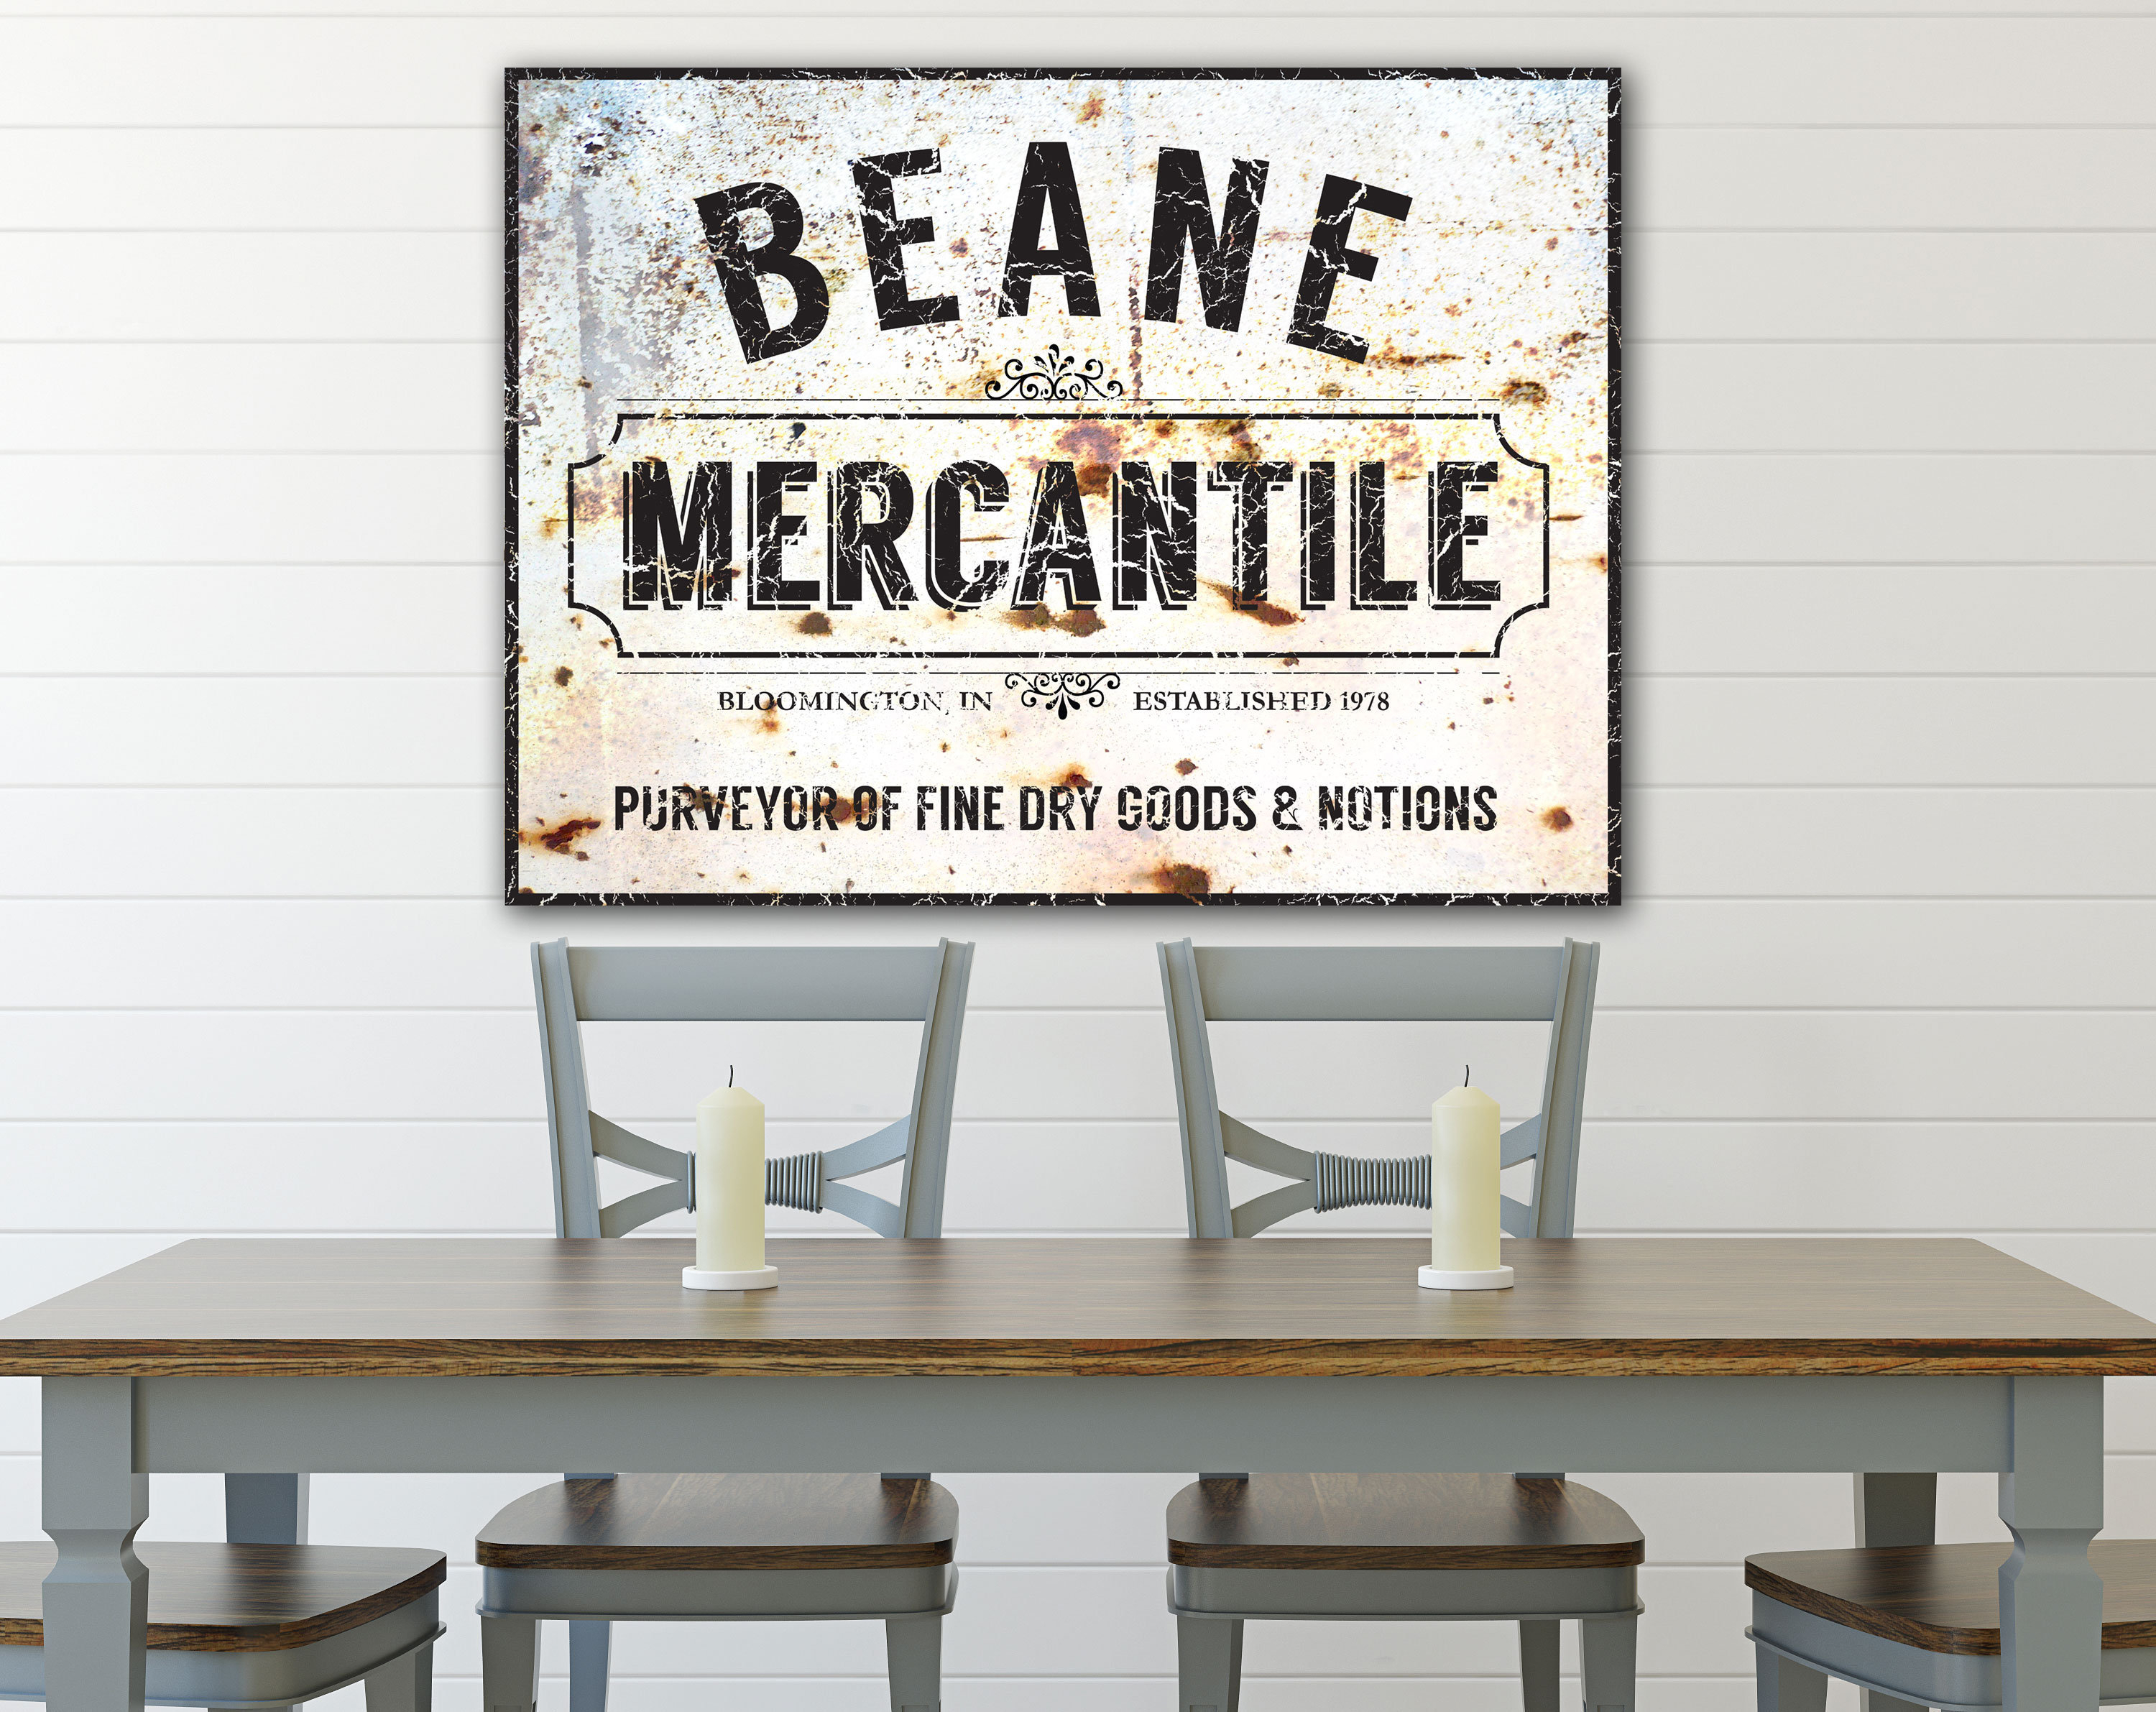 Custom Family Sign, Mercantile Sign, Large Rustic Wall Decor, Farmhouse Kitchen Decor, Last Name Sign, Vintage Dining Room Wall Art Throughout Personalized Distressed Vintage Look Kitchen Metal Sign Wall Decor (View 21 of 30)